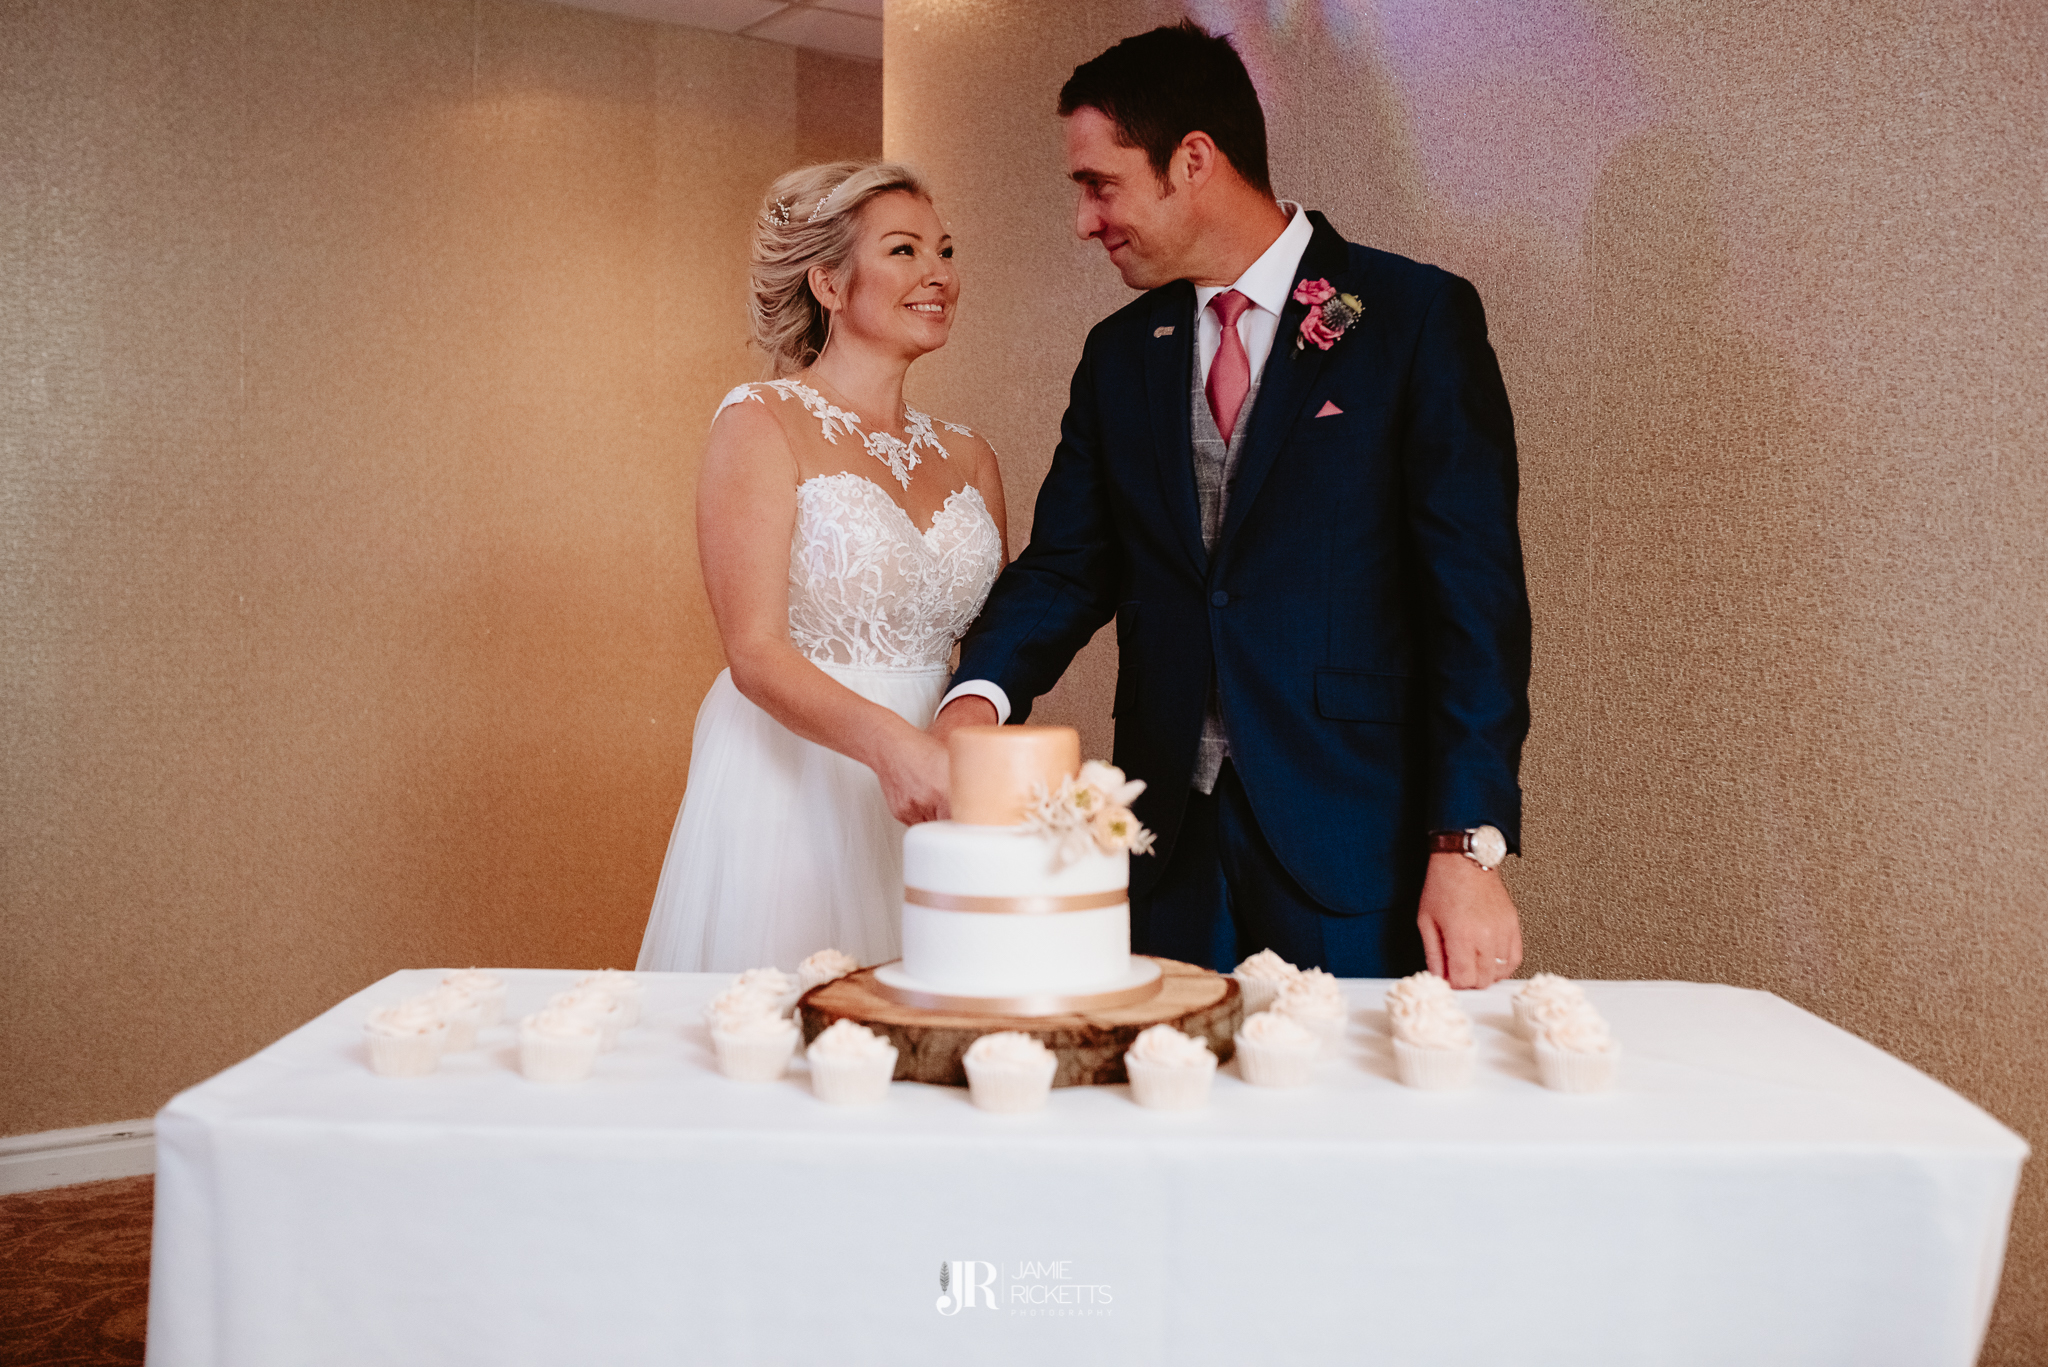 Wroxeter-Hotel-Wedding-Photography-In-Shropshire-By-Shropshire-Wedding-Photographer-Jamie-Ricketts-206.JPG